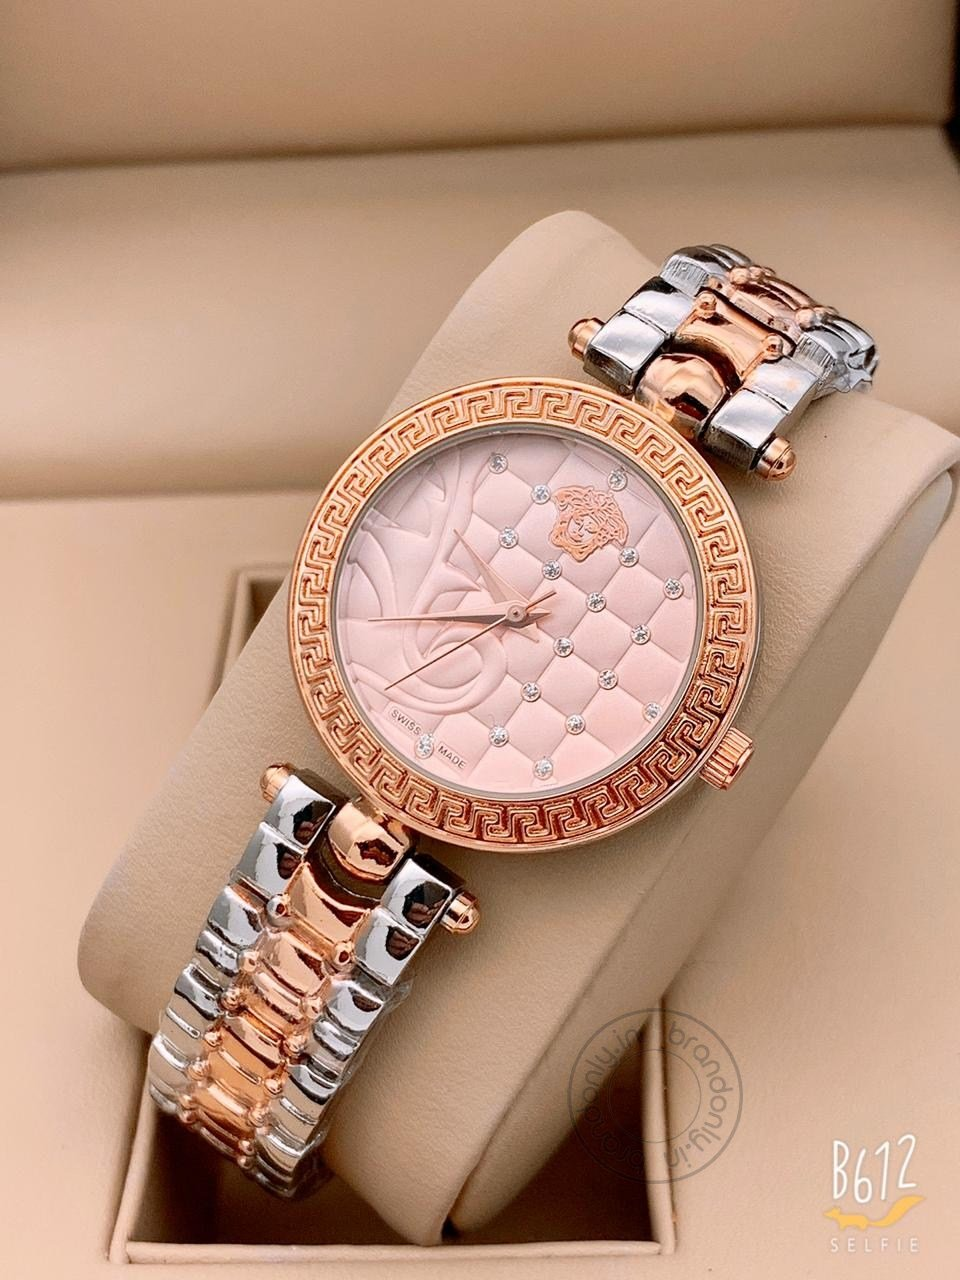 Versace Multi Color Rose Gold New Stylish Branded Women's Watch For Women And Girls Rose Gold Dial Ver-334